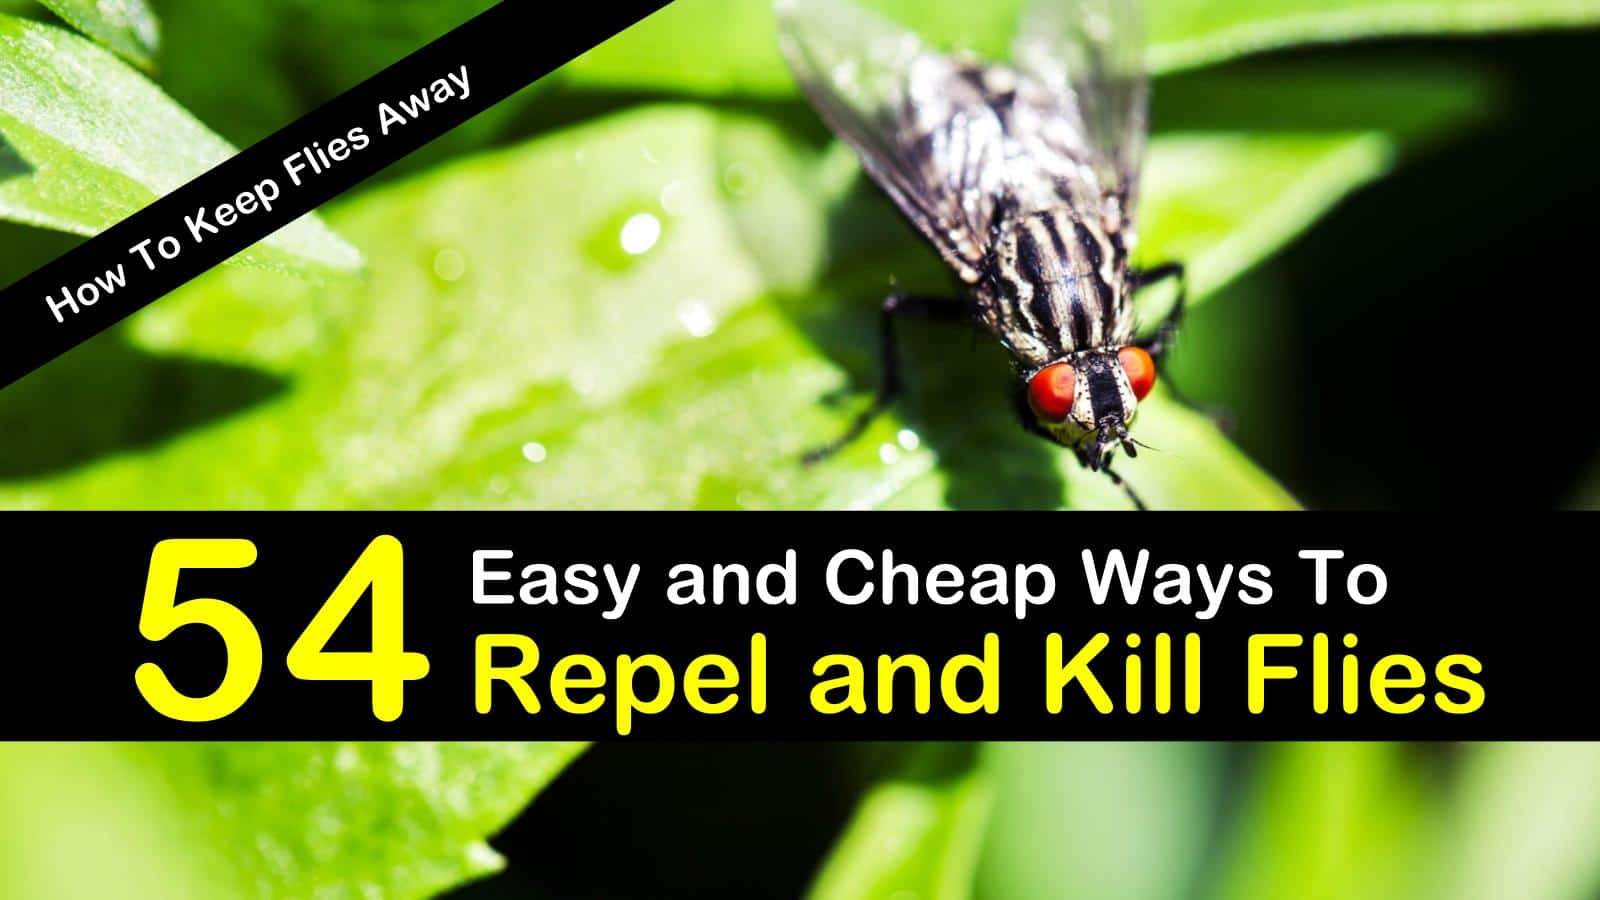 How to Keep Flies Away - 54 Easy and Cheap Ways to Repel and